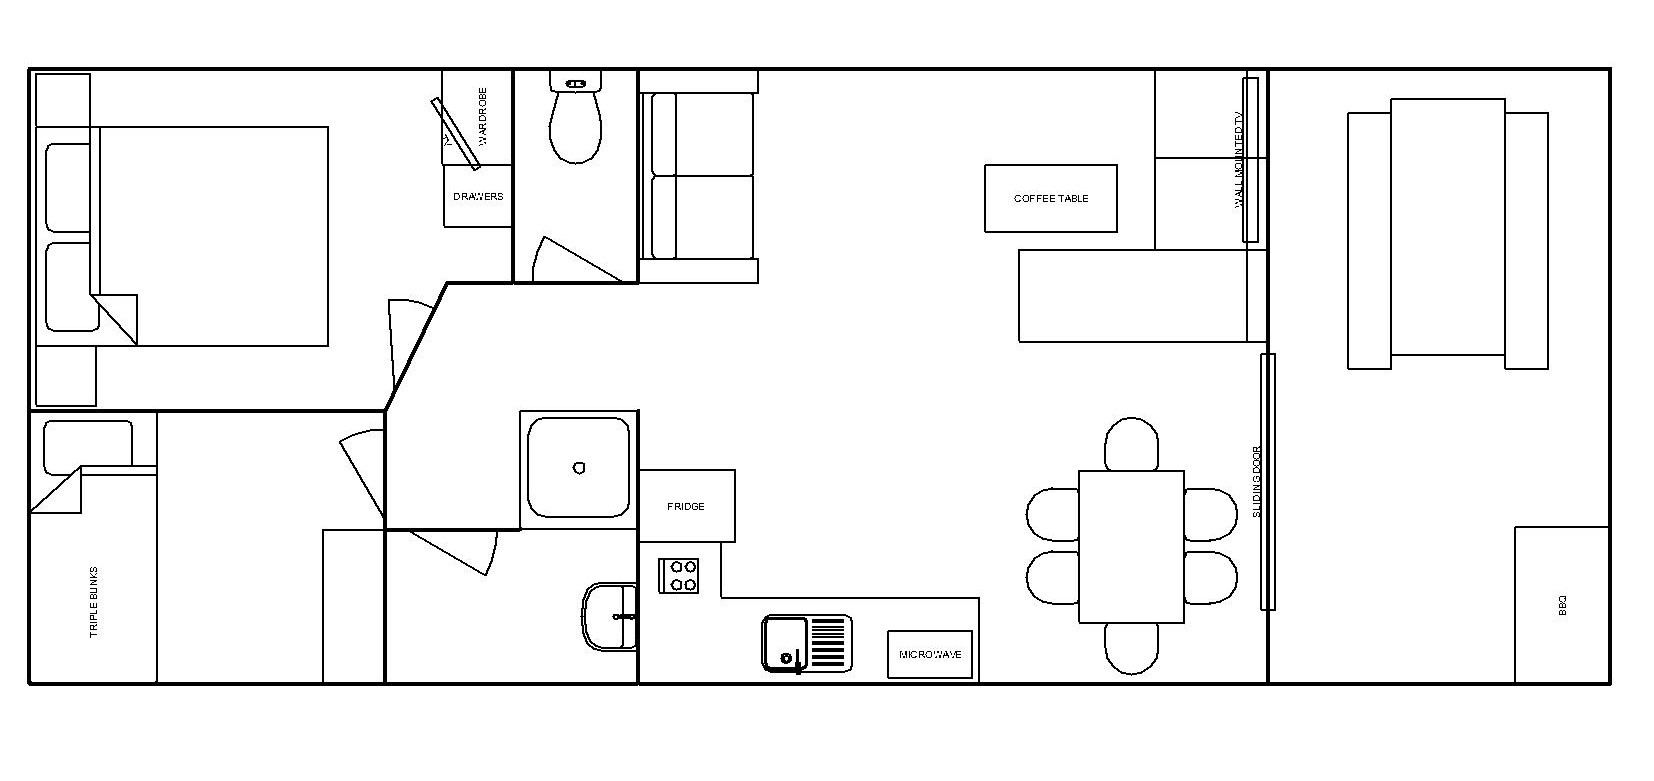 100 how to read a floor plan plangrid u2013 for How to read plans for a house